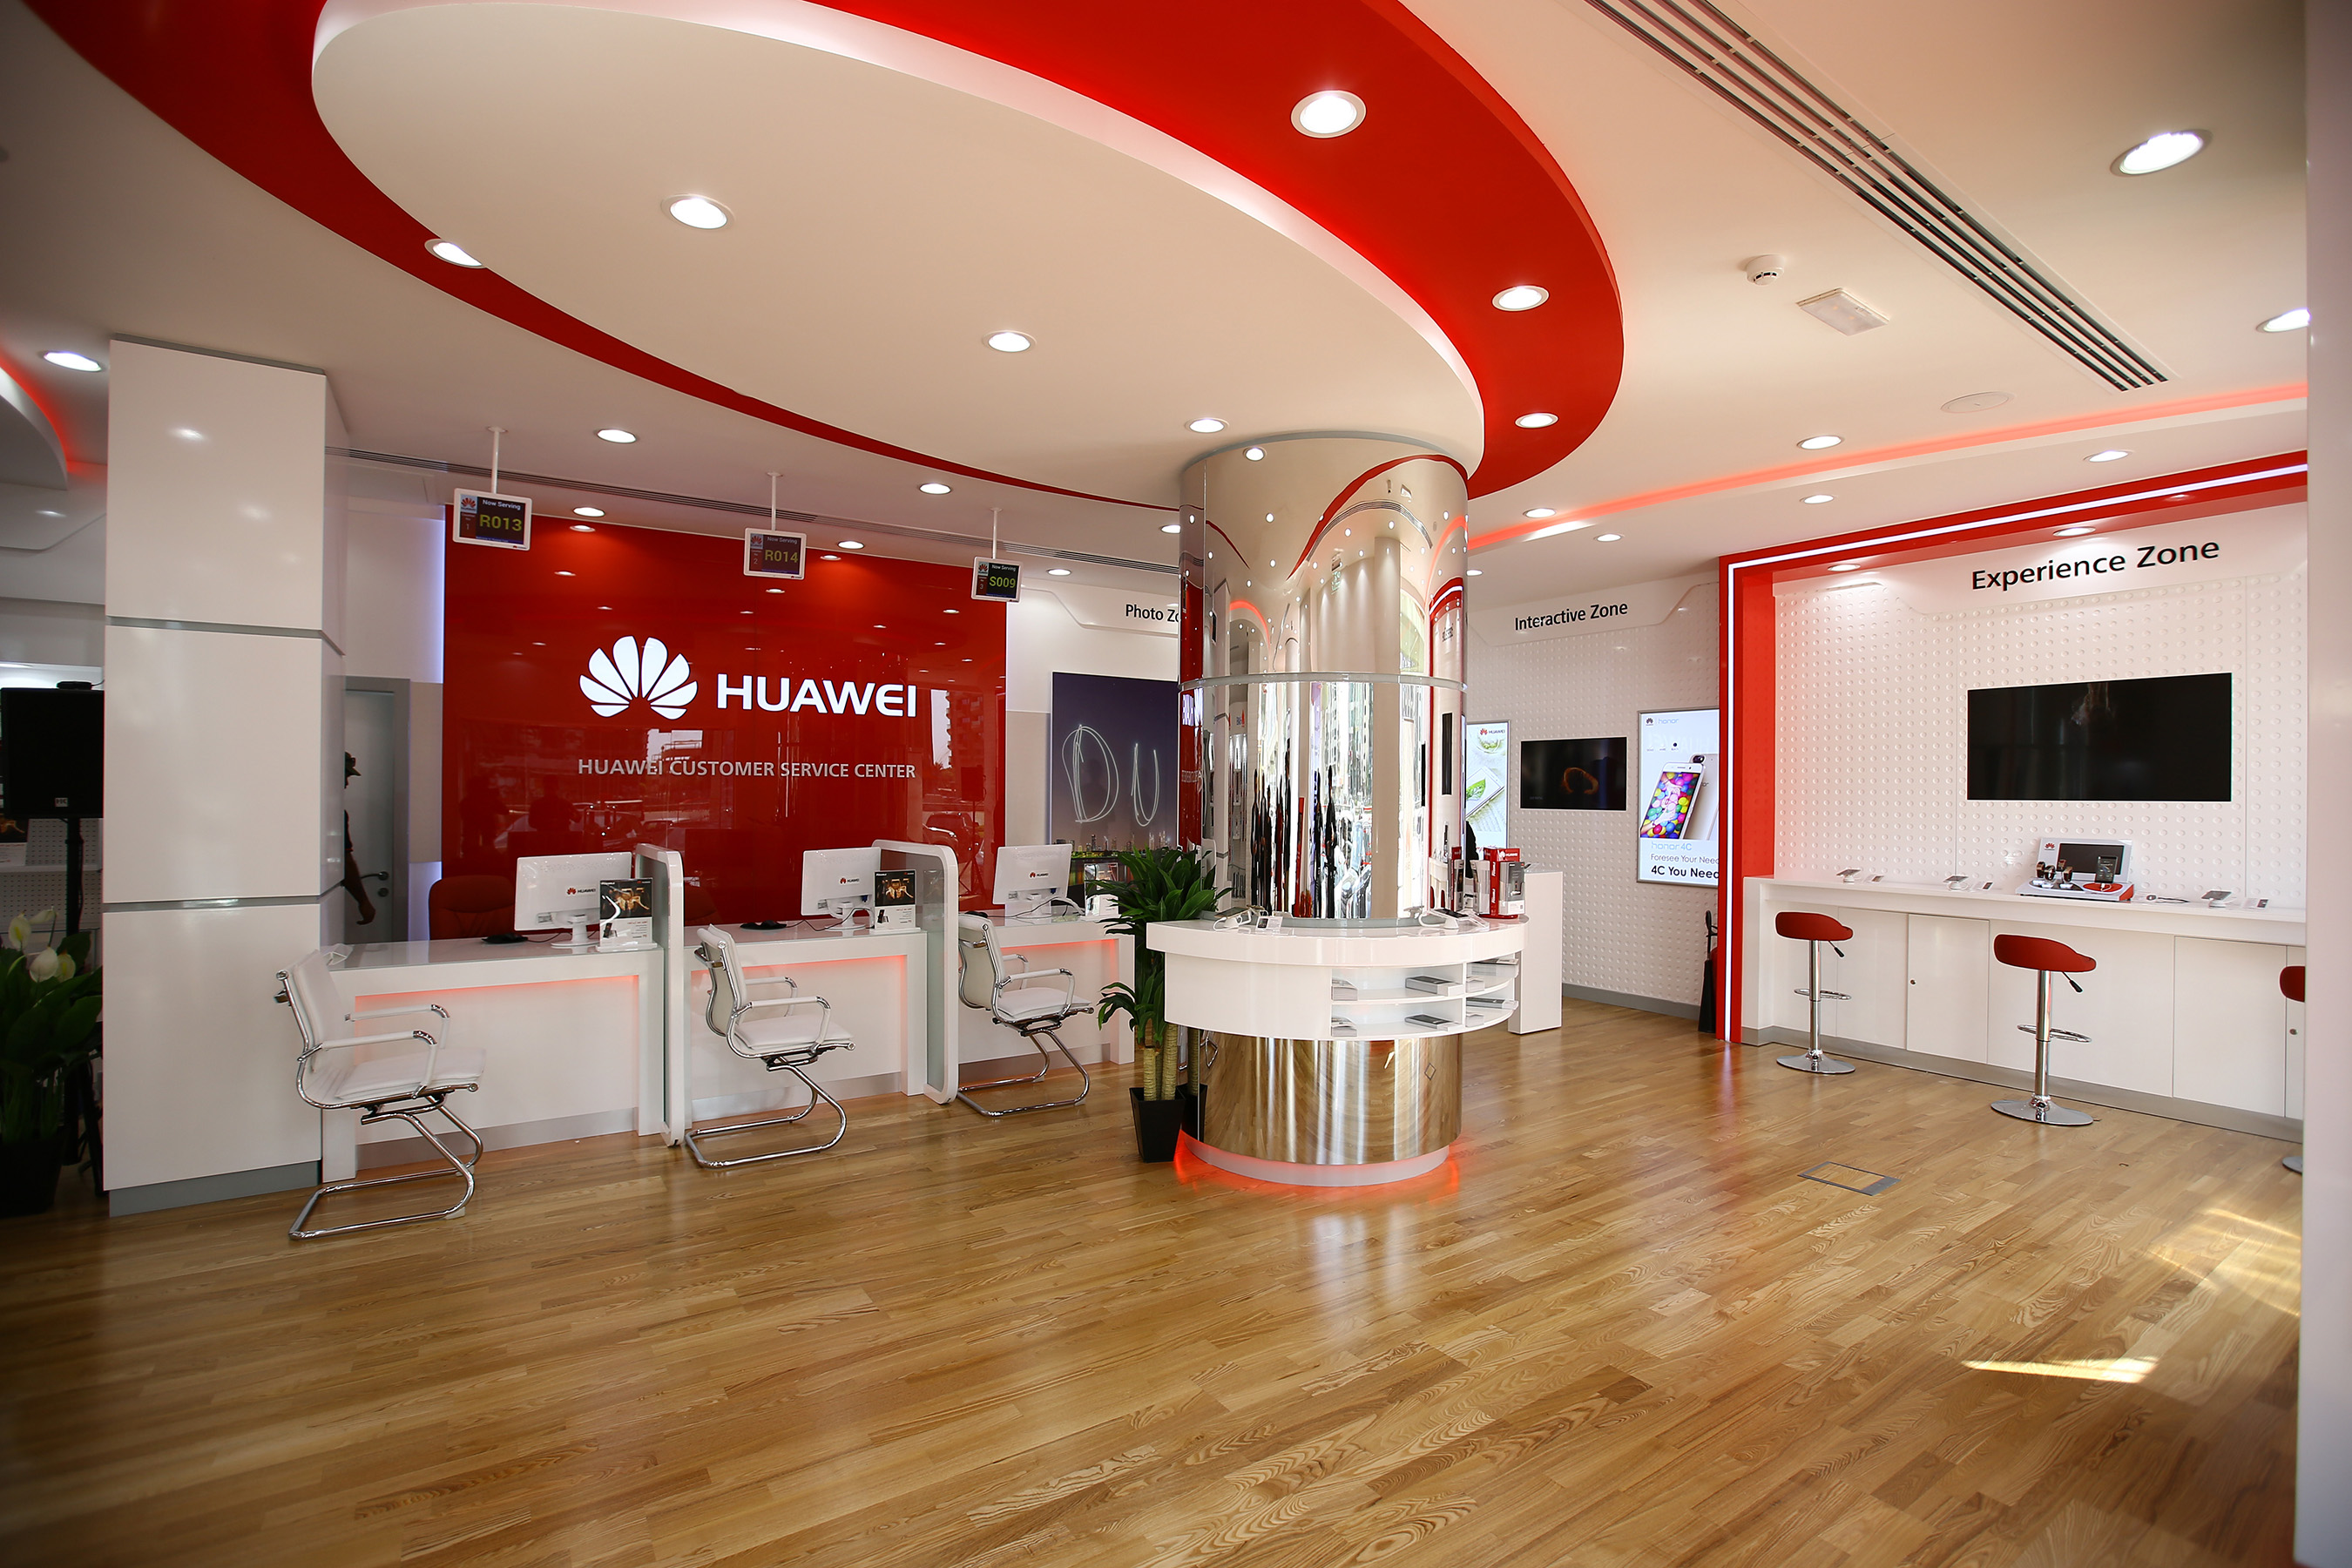 huawei inaugurates region s first flagship customer service center. Black Bedroom Furniture Sets. Home Design Ideas